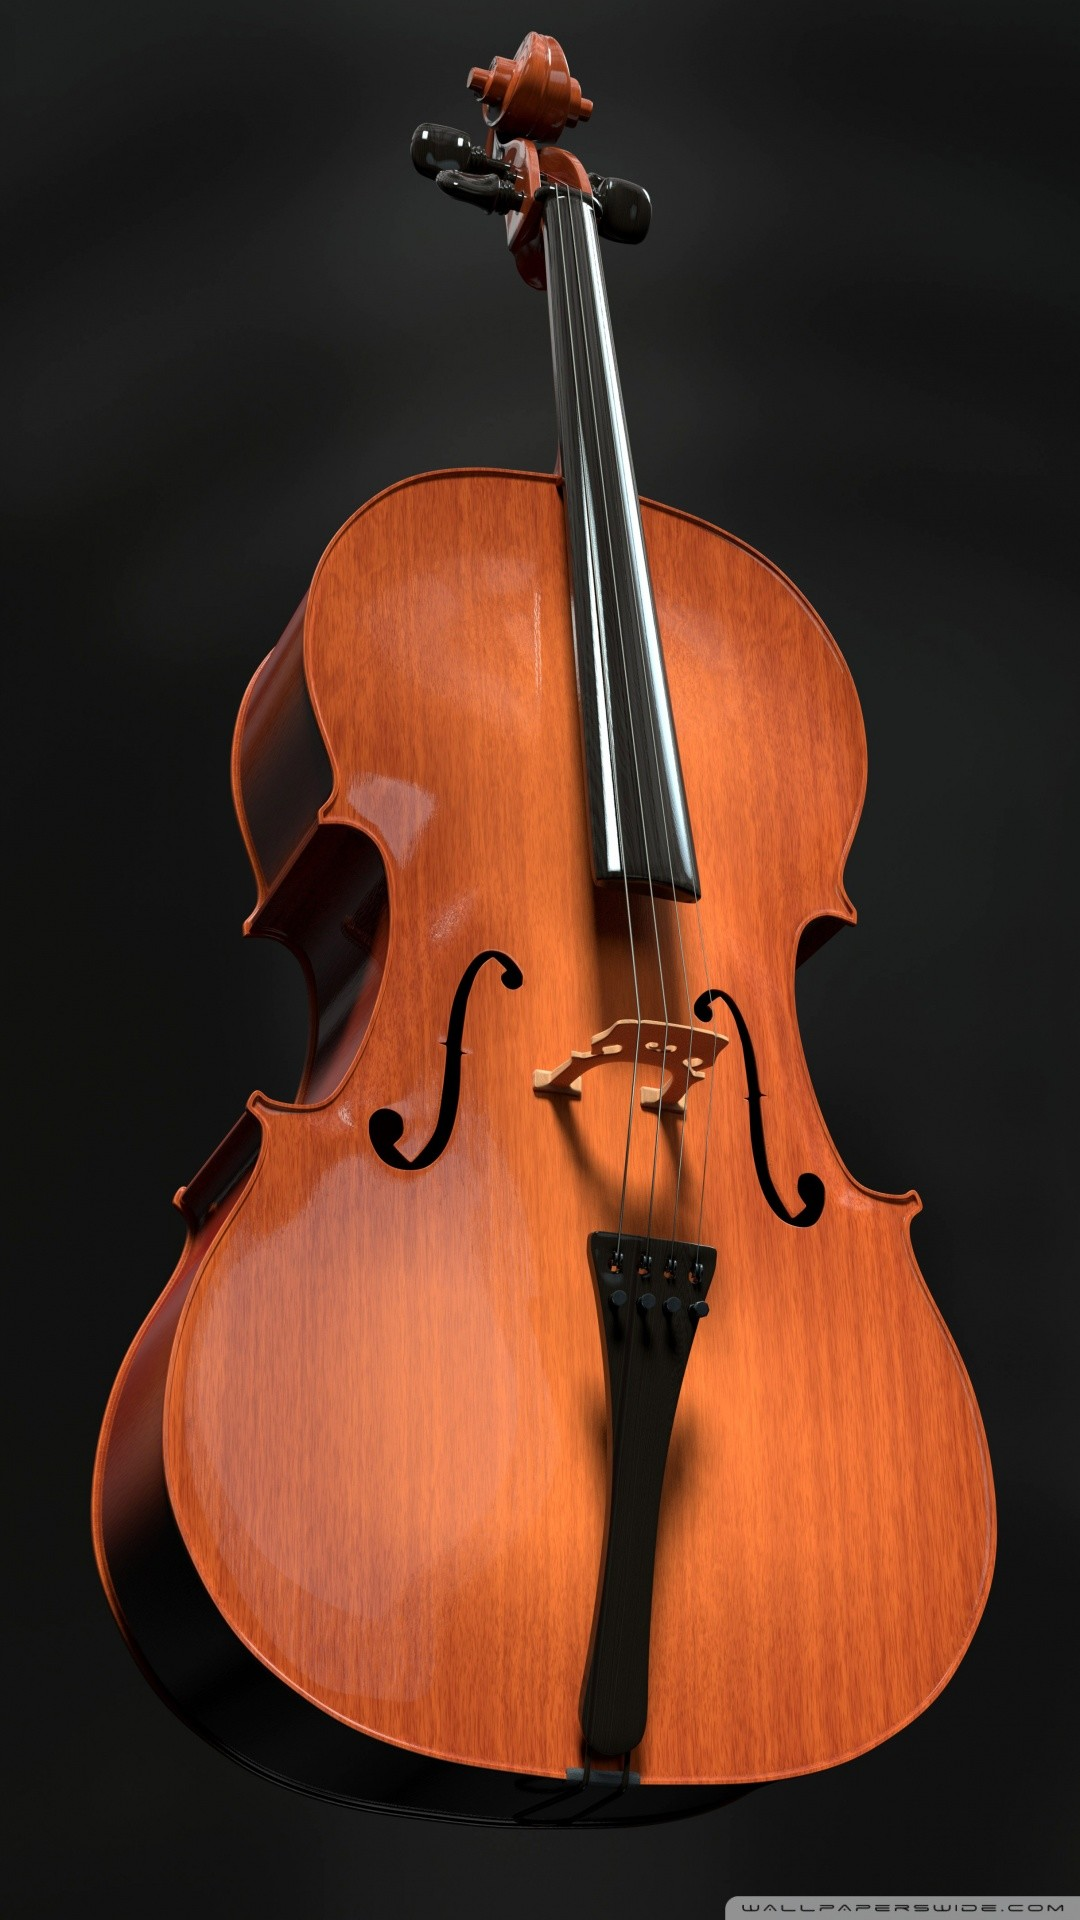 Free Cello Musical Instrument phone wallpaper by magic0912